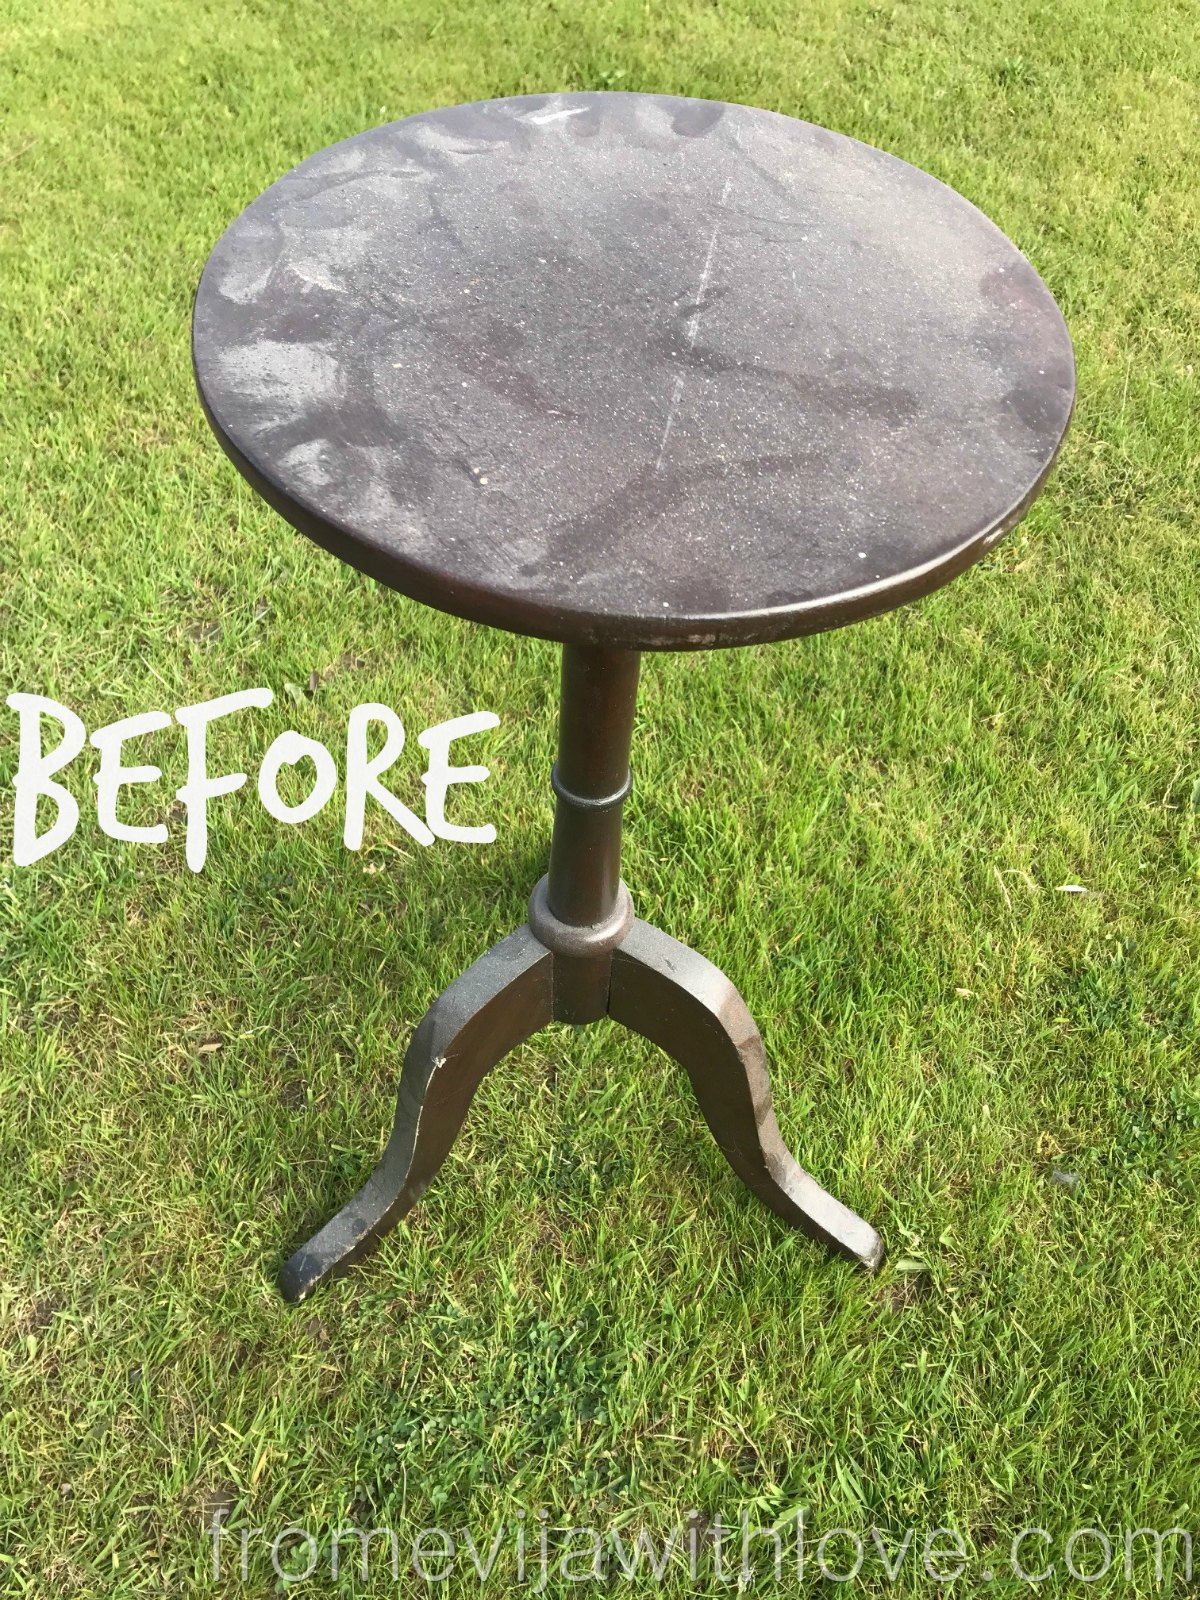 thrift store side table makeover | Side